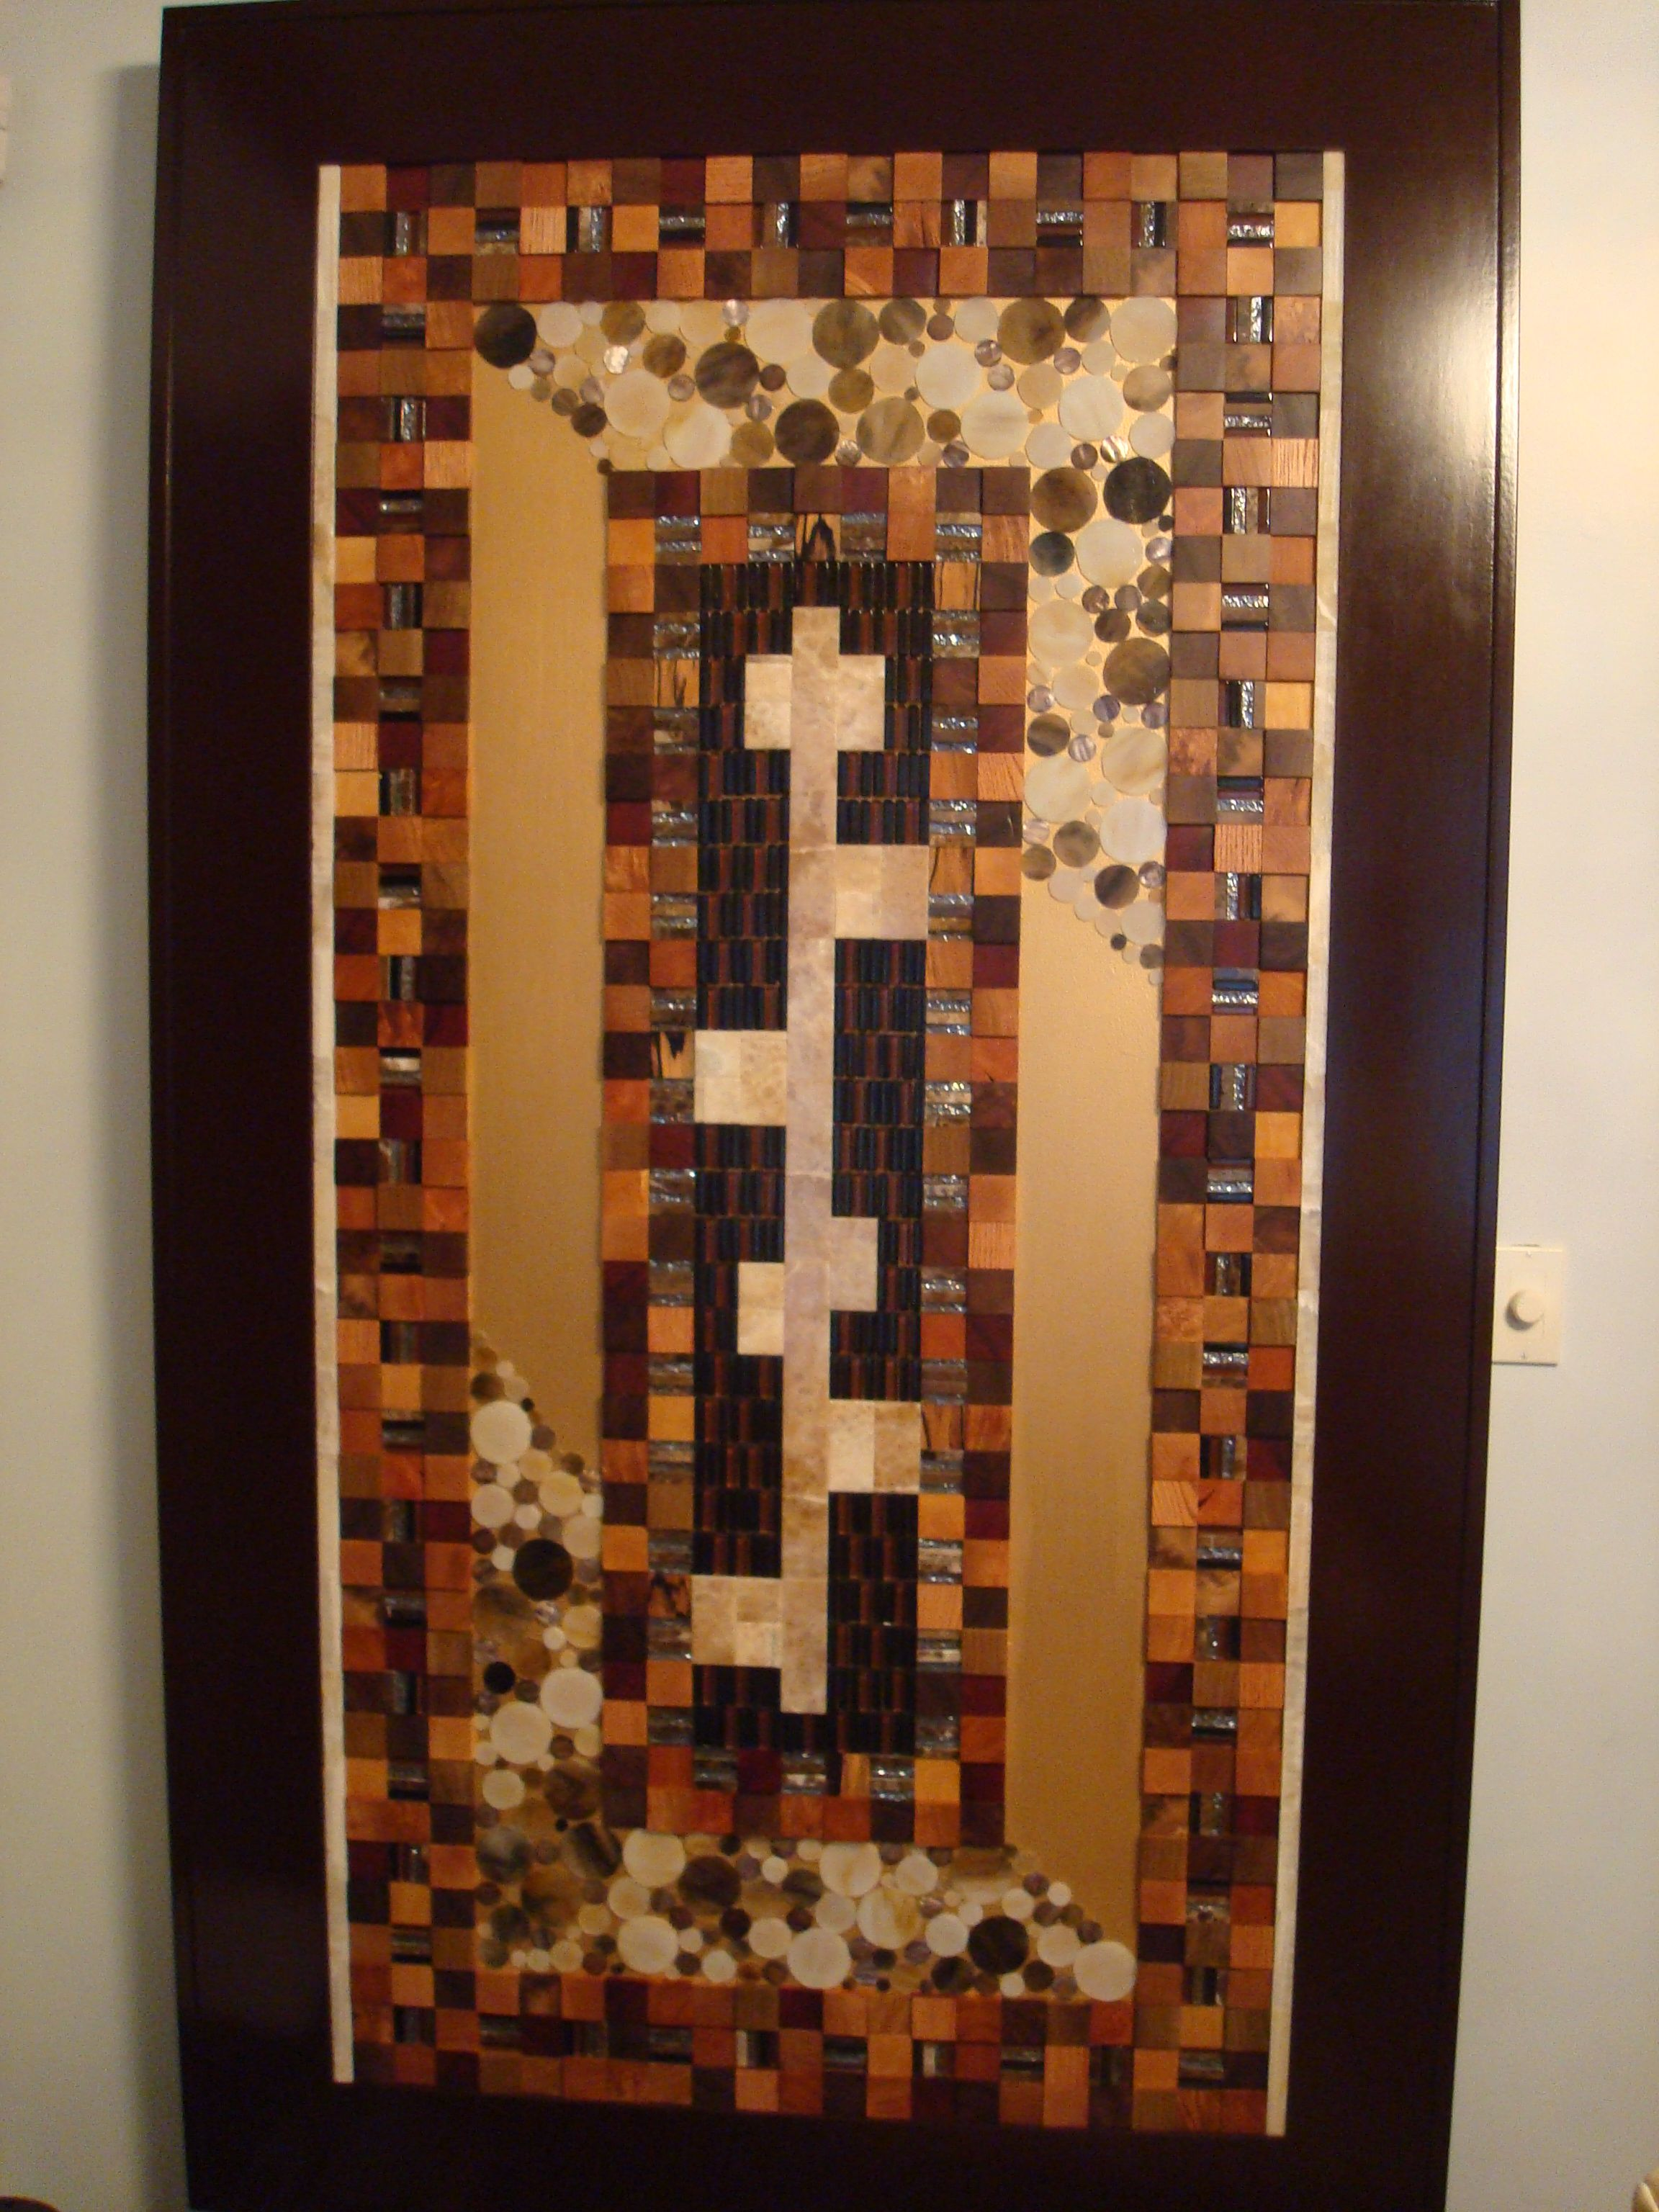 Formal Dining Wall Art in Lincolnwood, IL. Mix exotic wood blocks, mix onyx and glass discs, mix onyx and glass blocks with gold leafed background.